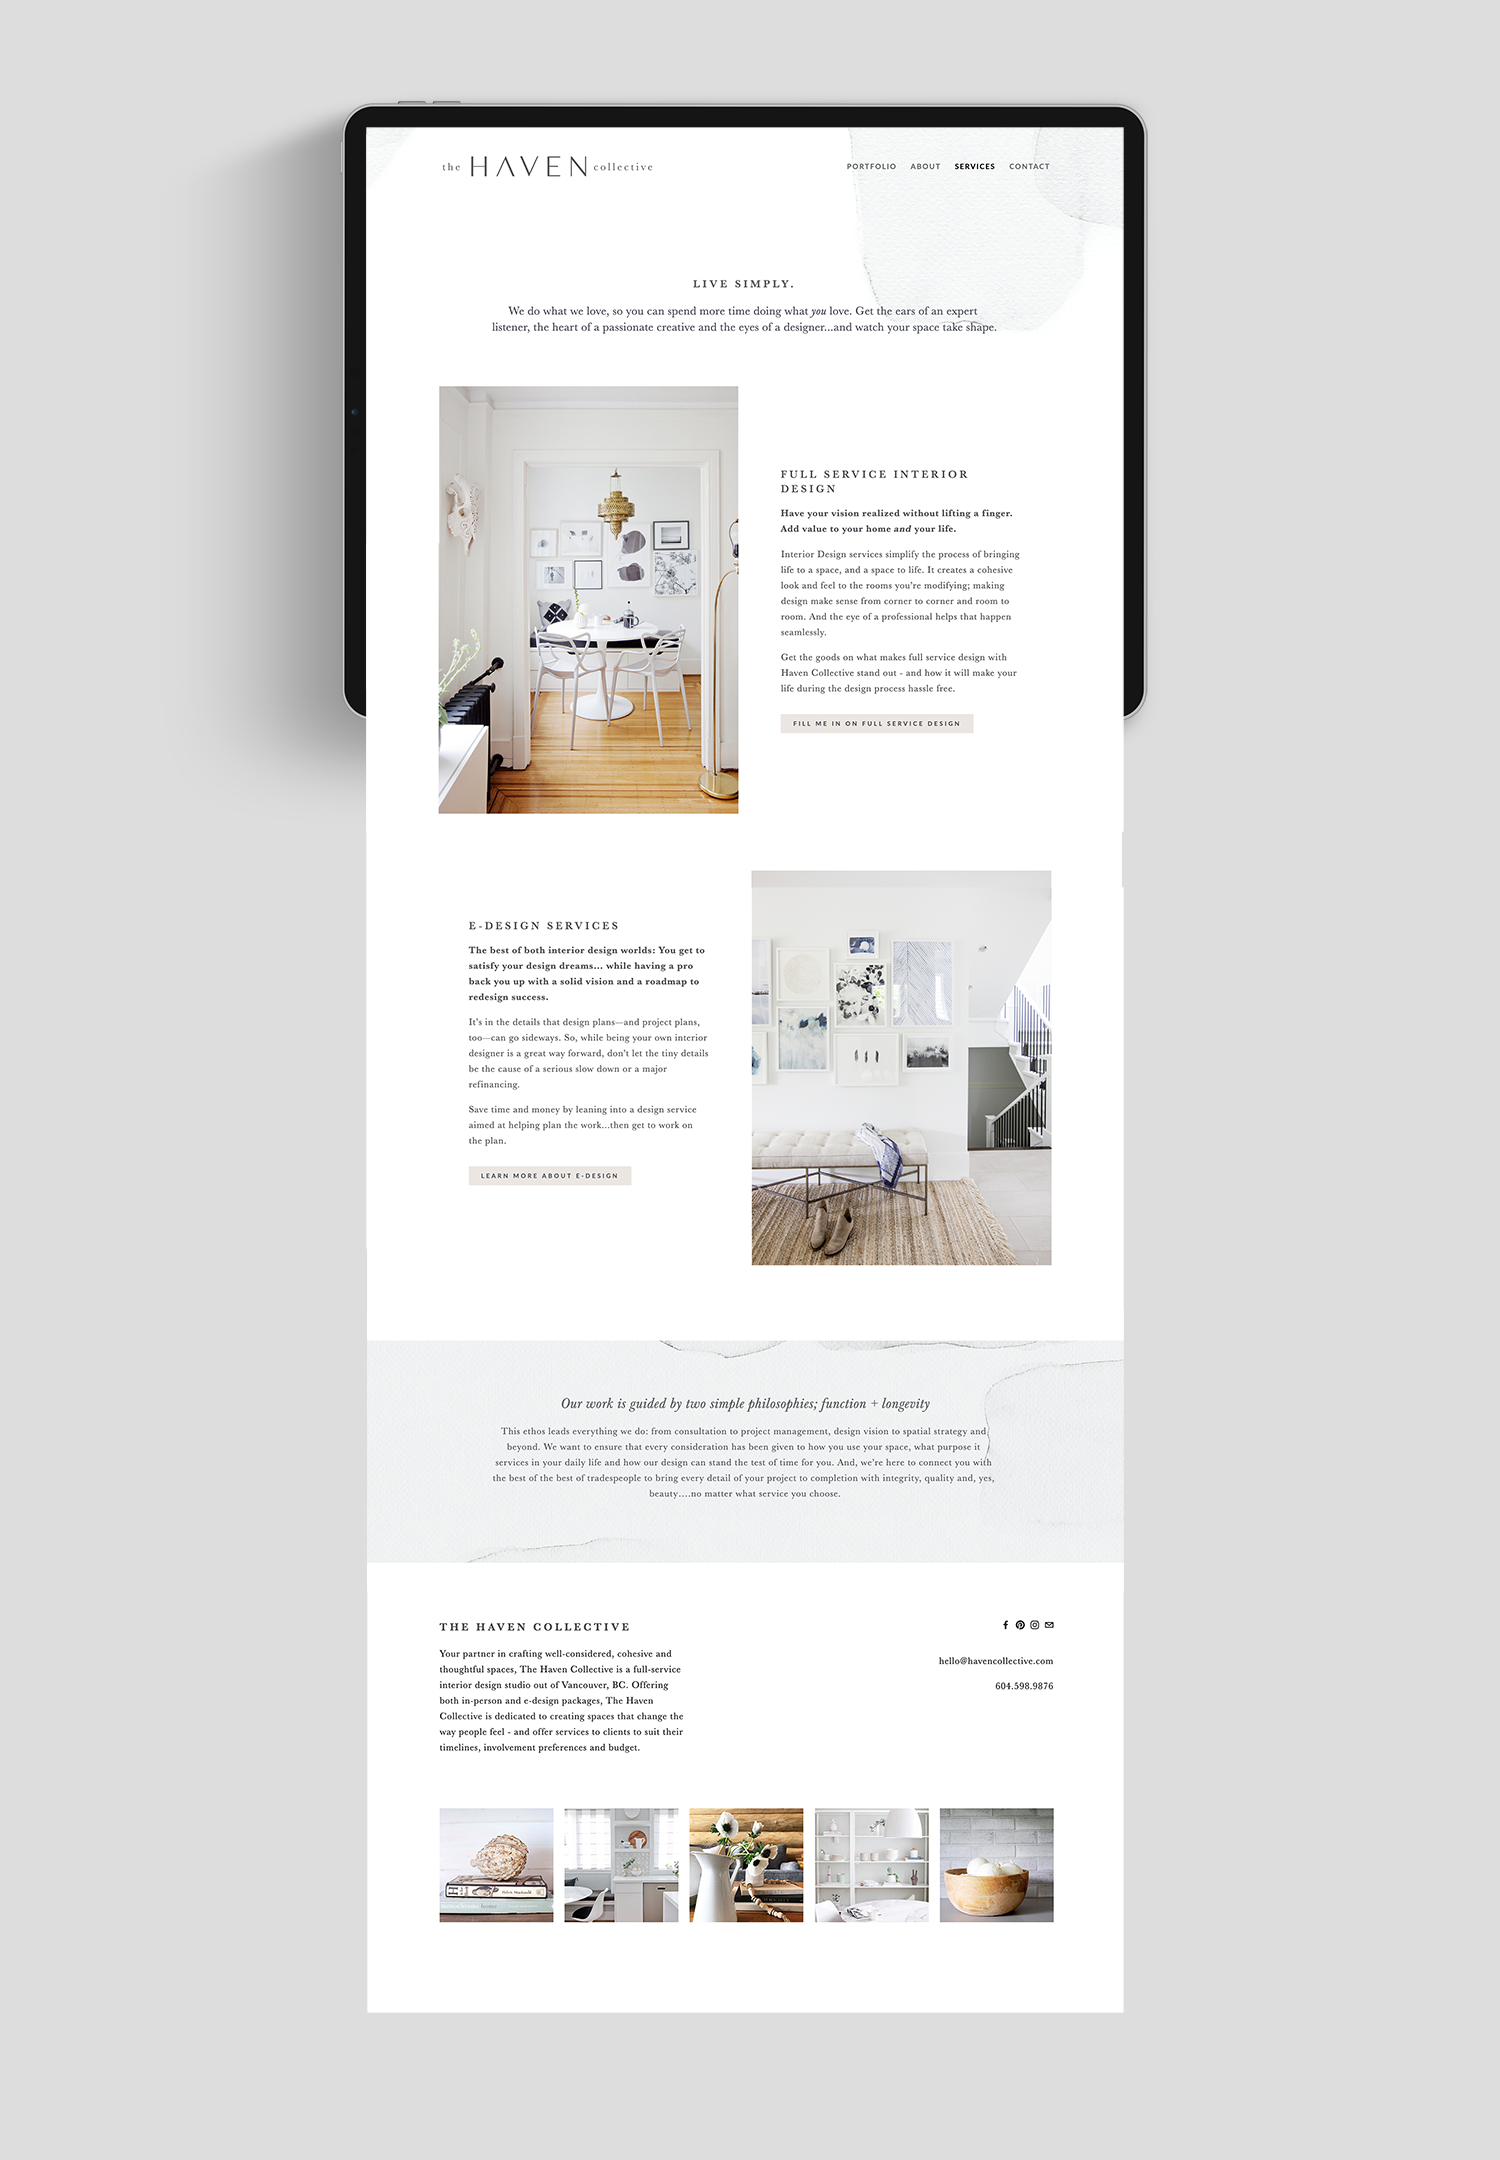 Mockup of The Haven Collective's website (services page) on an iPad with a soft pattern behind the main navigation